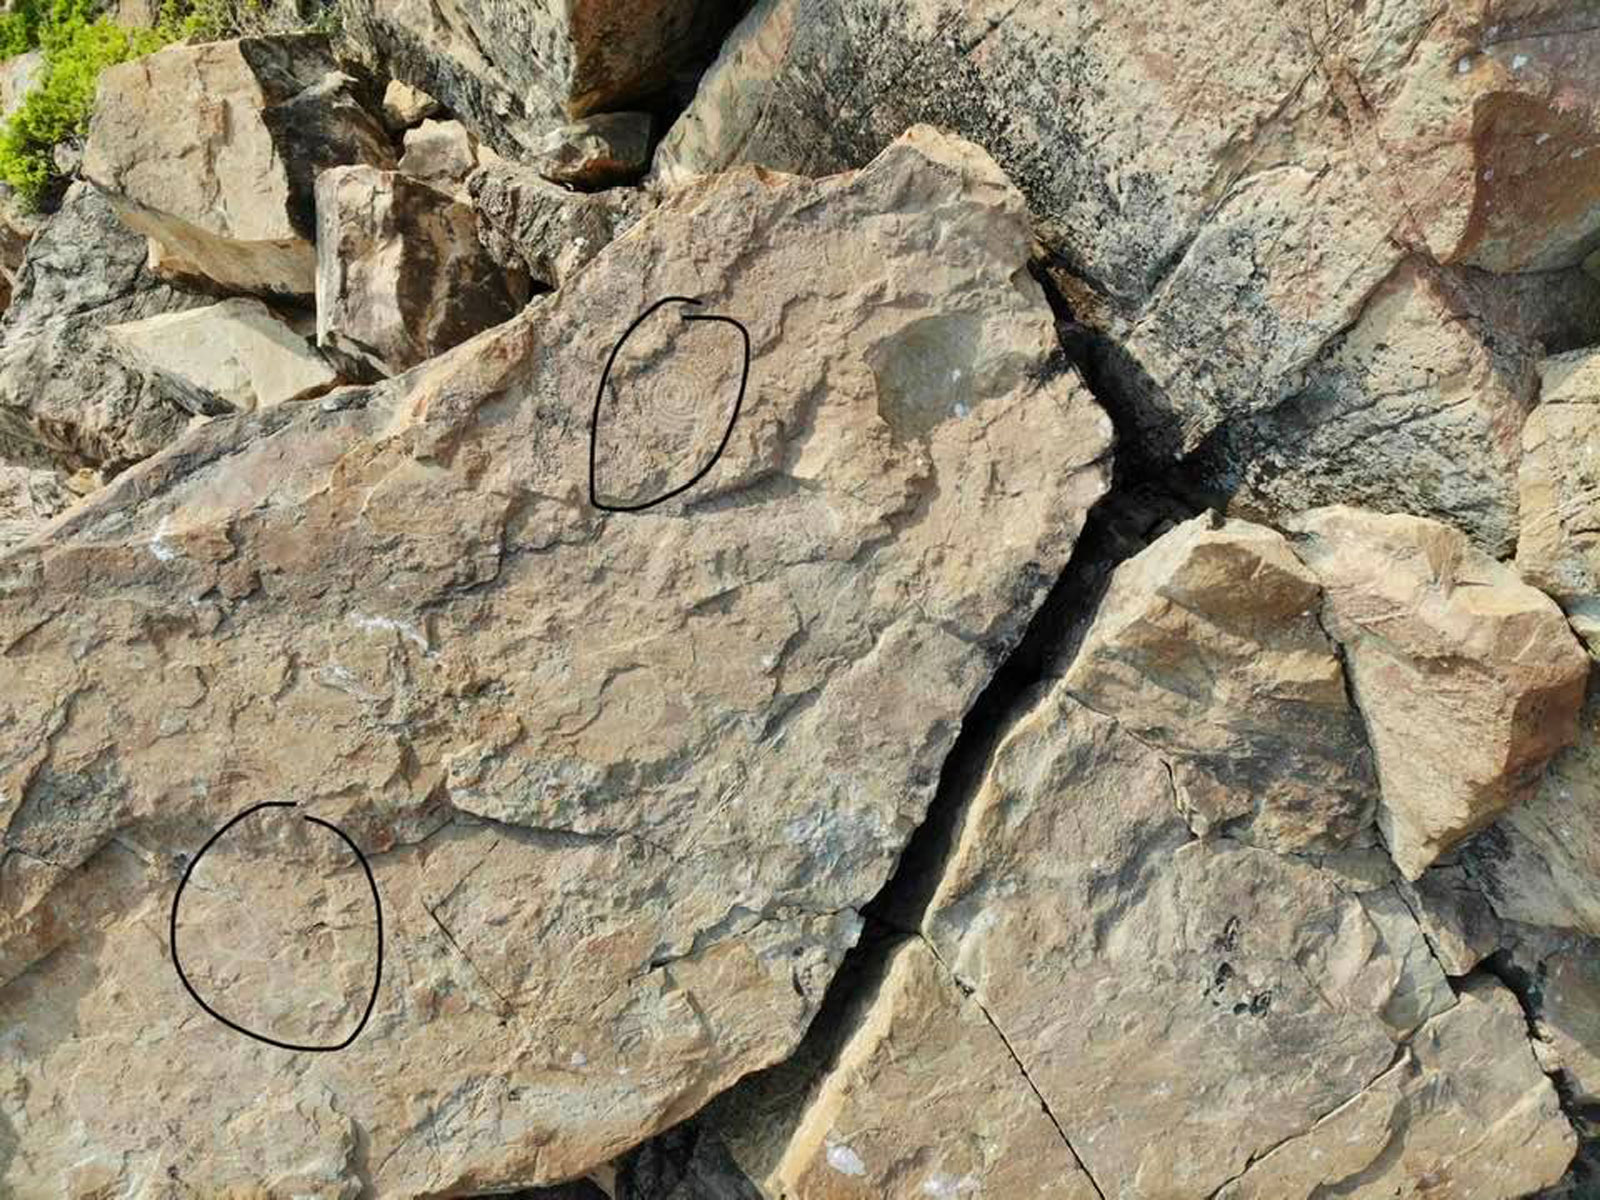 Petroglyphs found at Punta Conejo, Salina Cruz, Oaxaca, Mexico